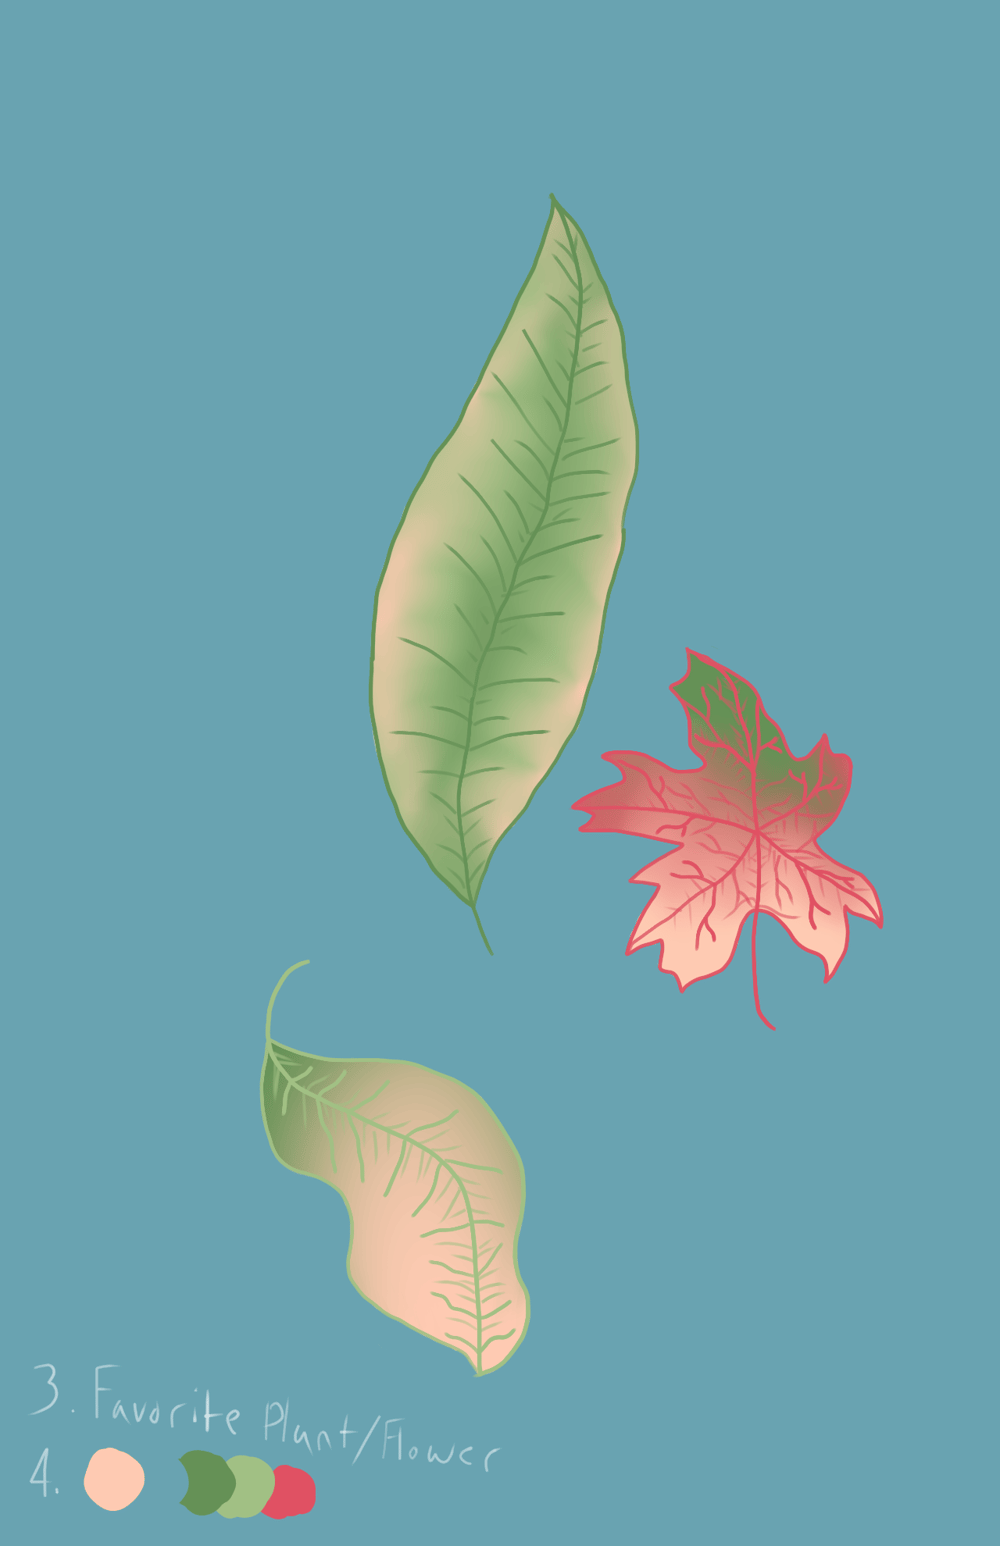 Dying Leaves - image 1 - student project